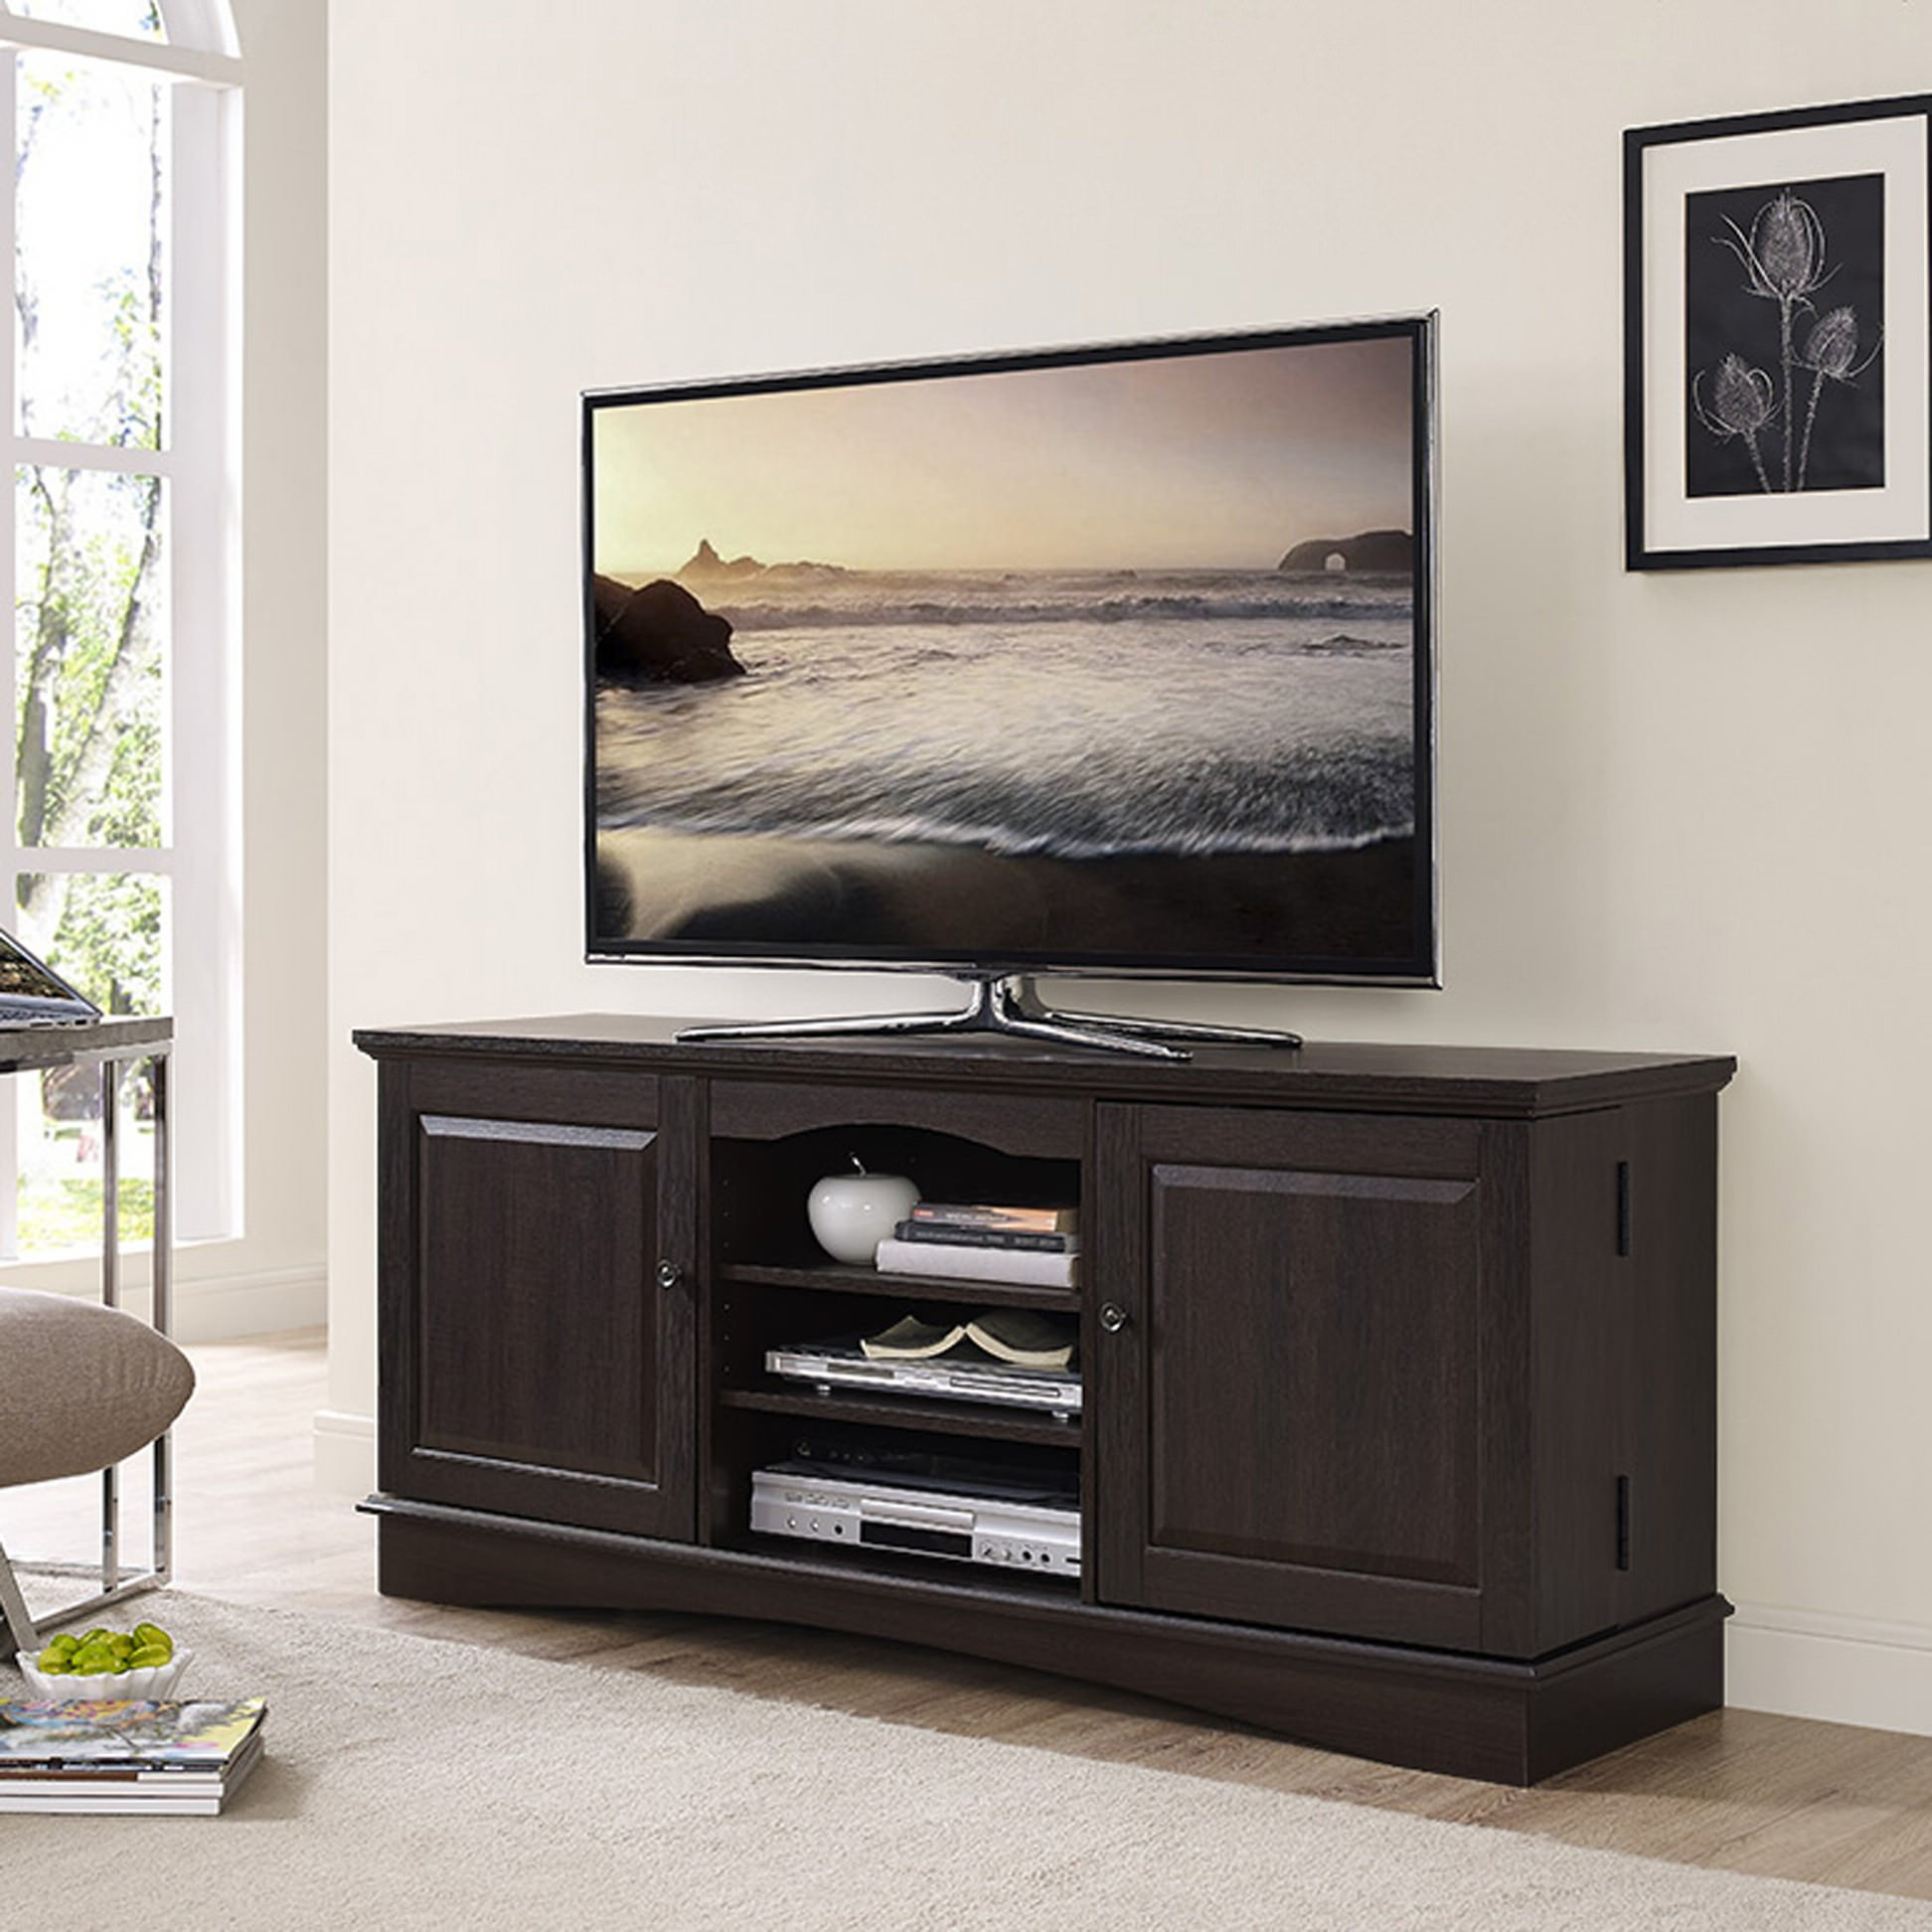 """60 Inch Espresso Wood Tv Standwalker Edison Throughout Adayah Tv Stands For Tvs Up To 60"""" (View 2 of 20)"""